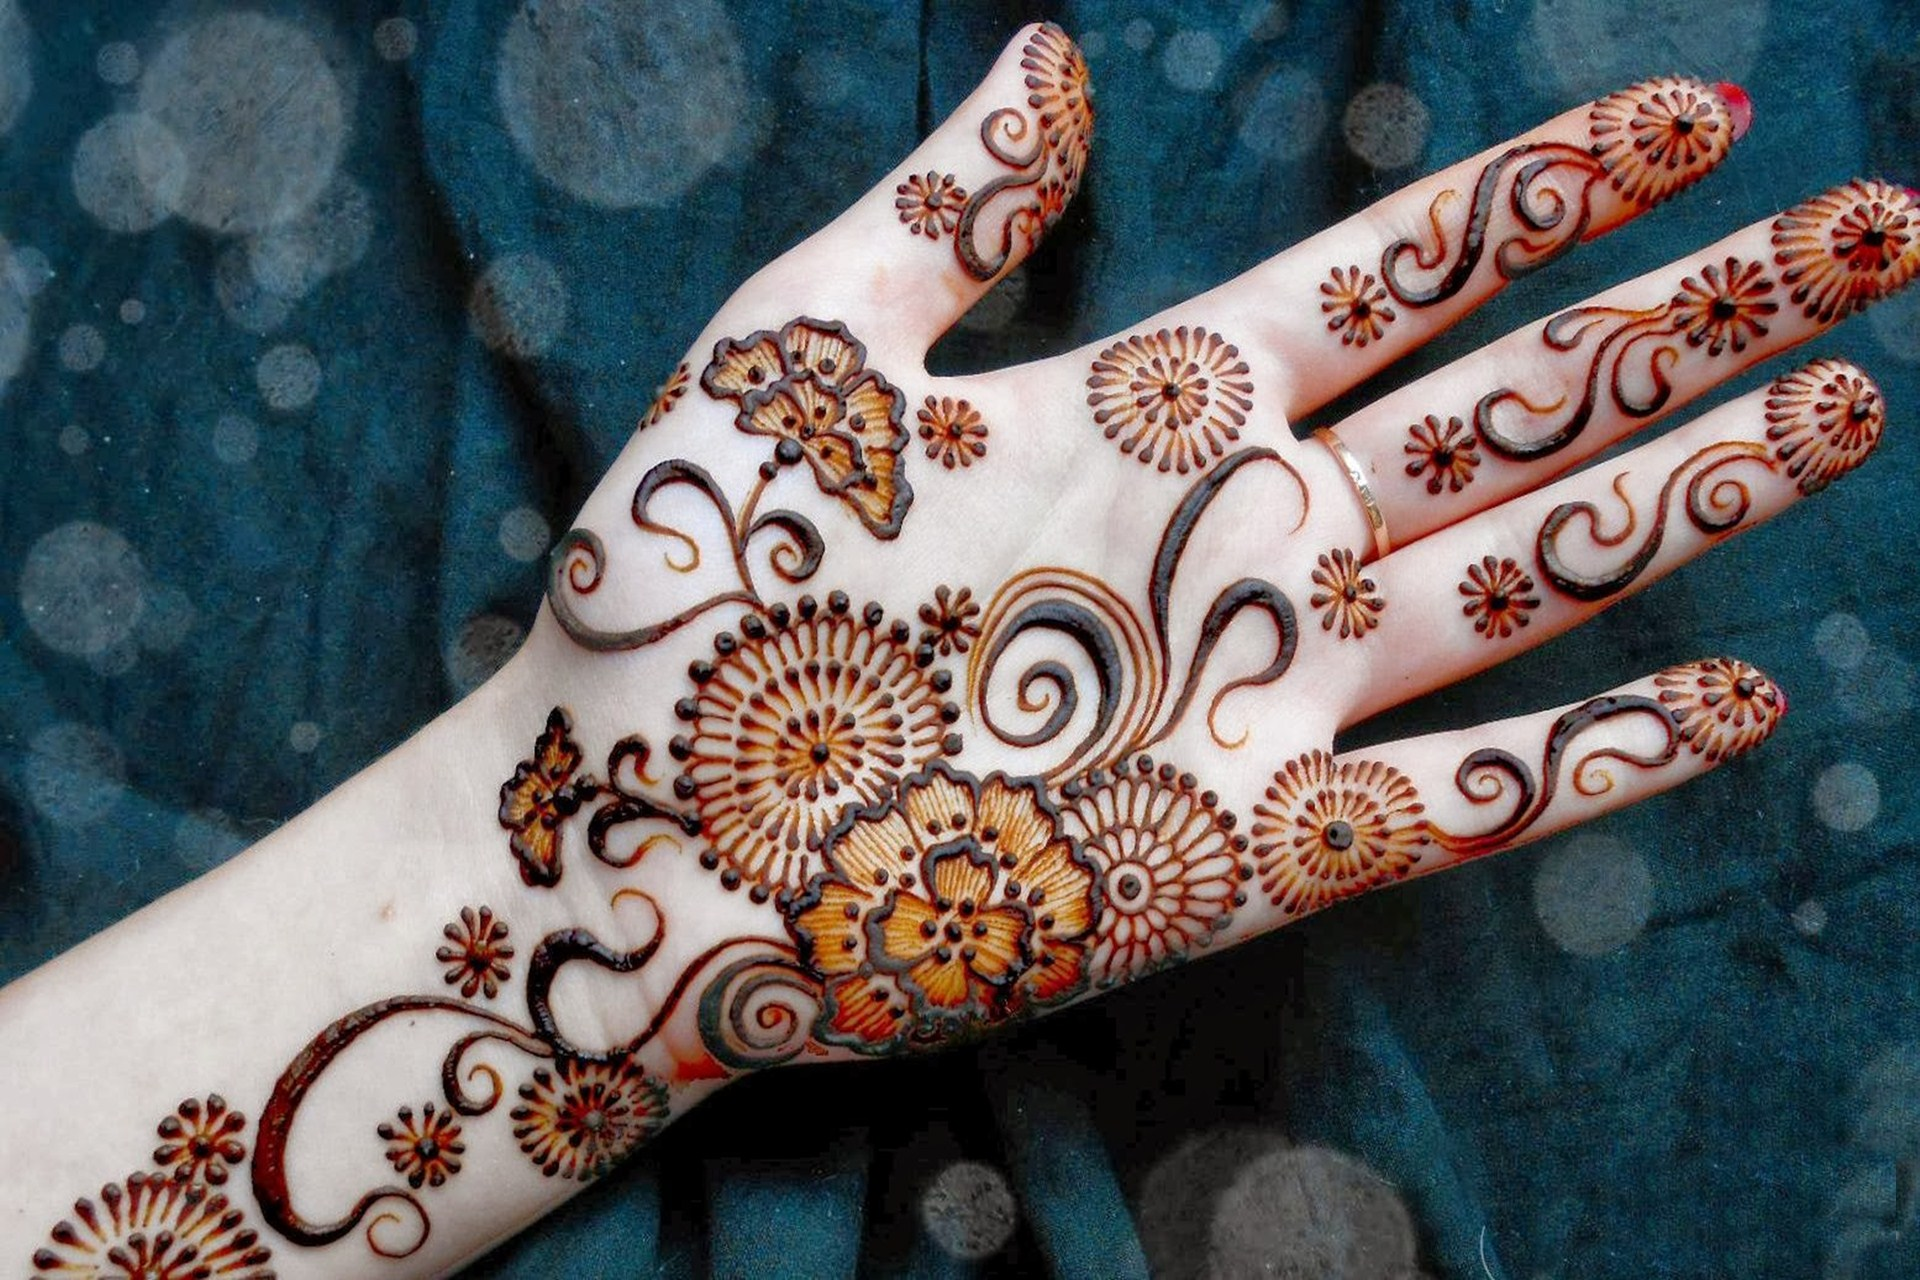 Mehndi Photography Facebook : Mehndi design on hand full hd wallpaper and background